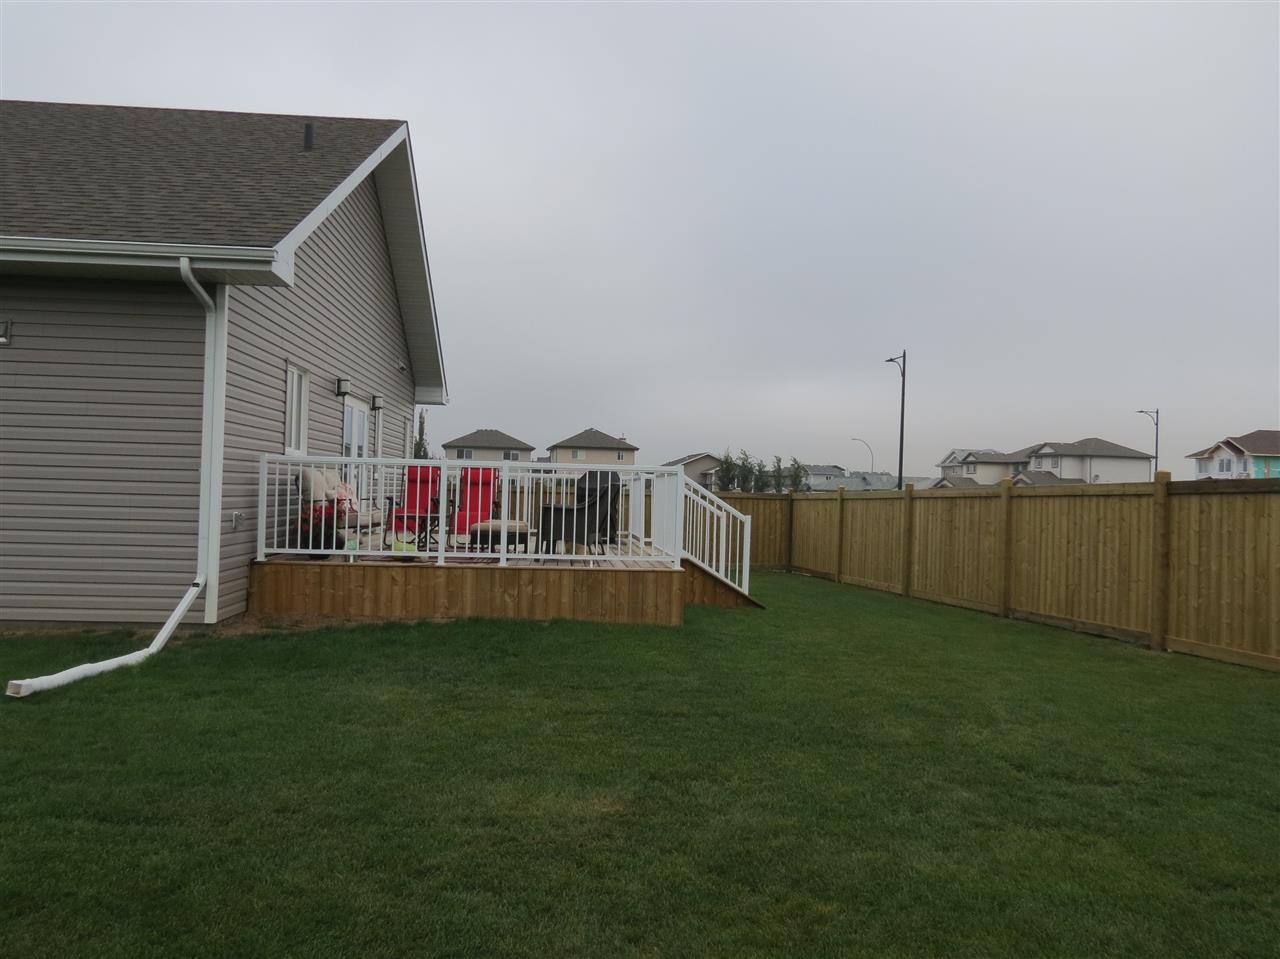 Photo 24: 9605 88 Street: Morinville House for sale : MLS(r) # E4047749